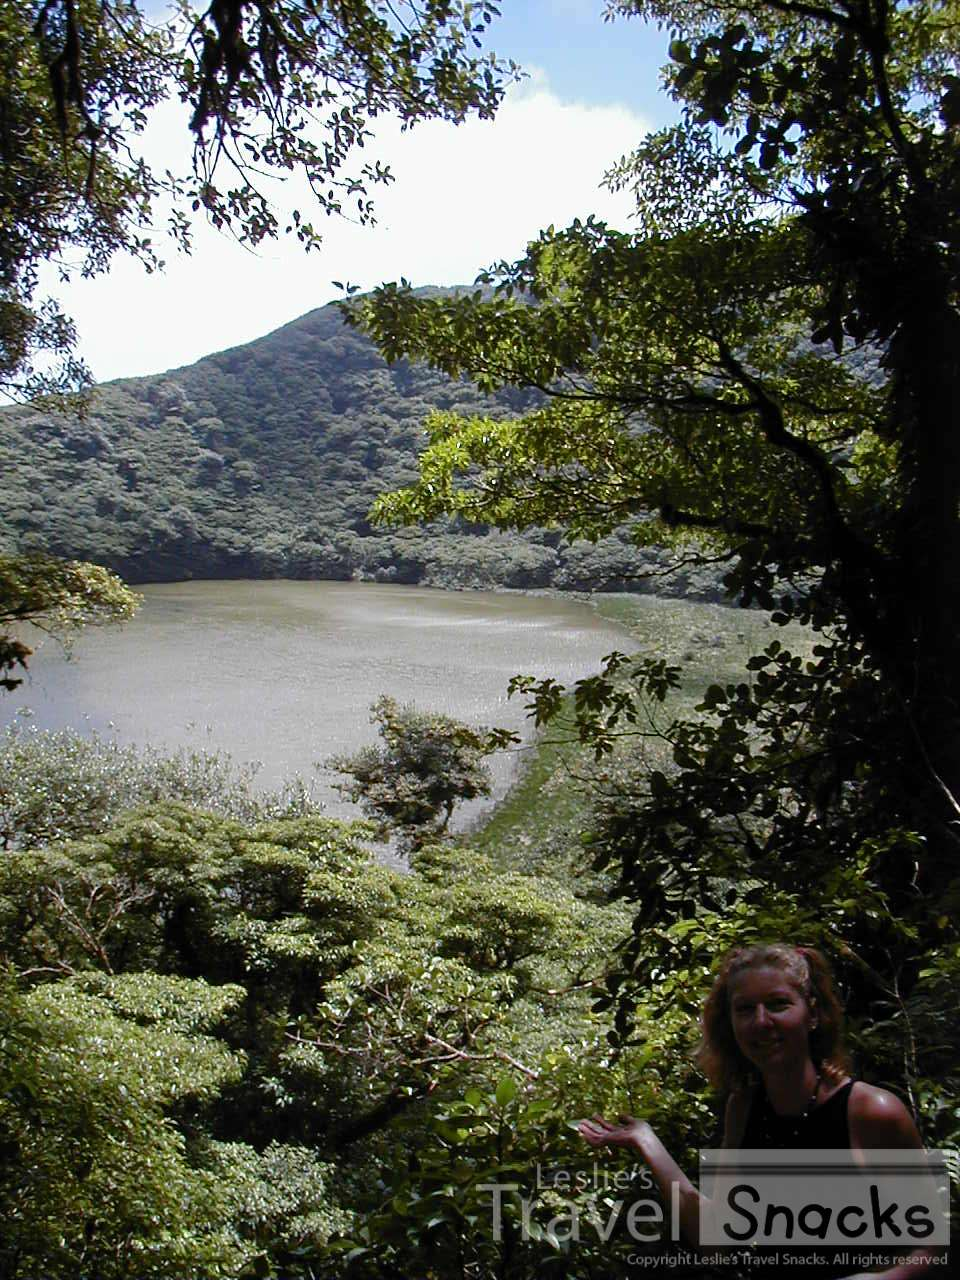 Hiked up to the peak of Omotepe to the lake on this island within a lake.